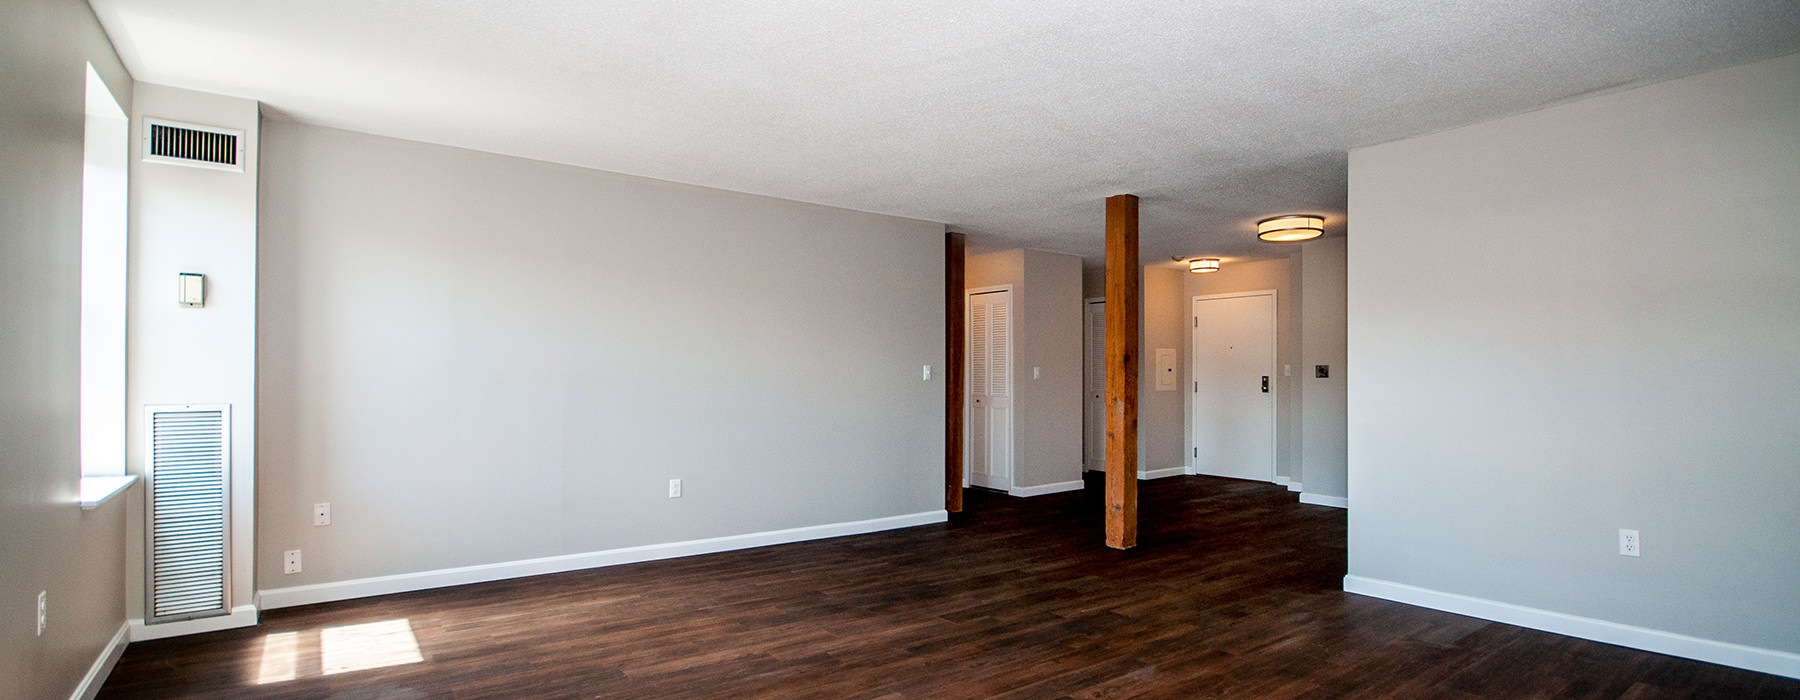 unfurnished large living room with large windows